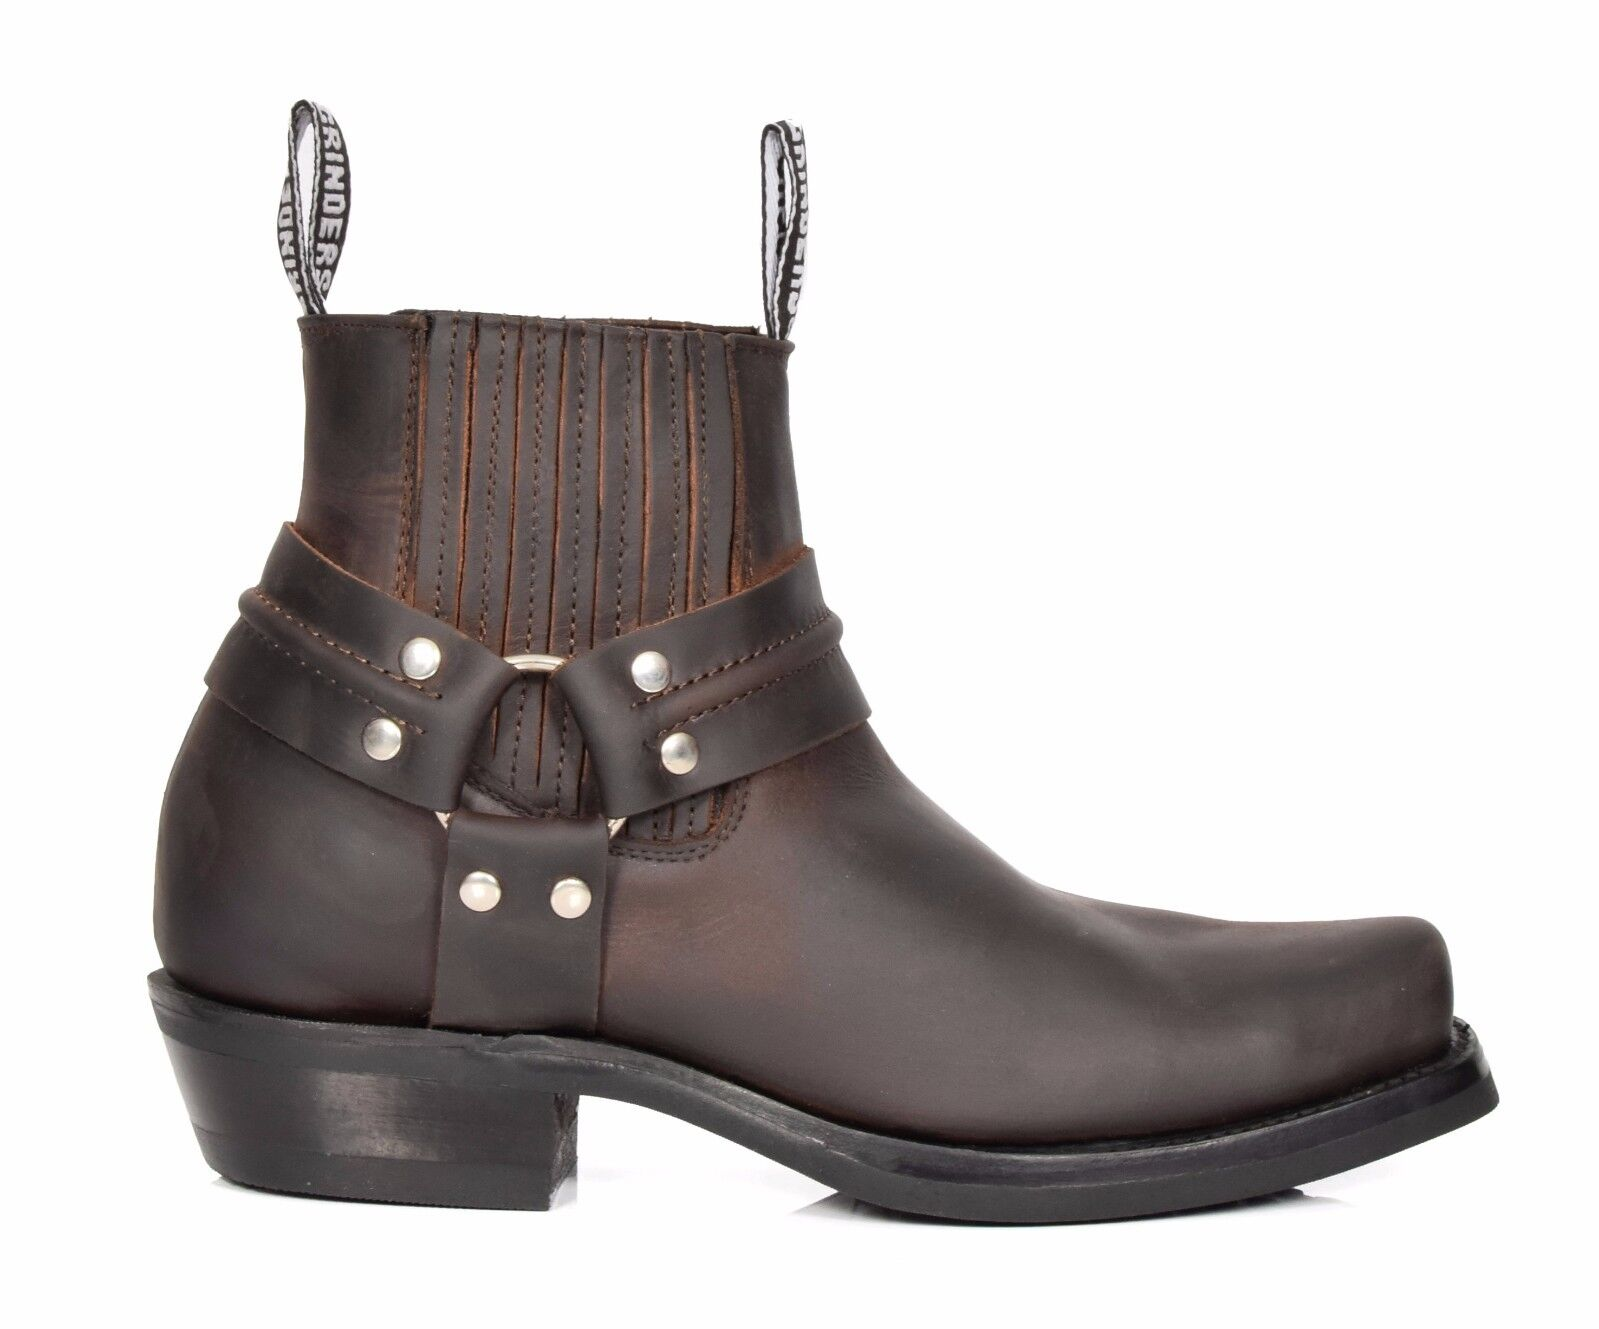 Real Leather Leather Leather Chelsea Stiefel Cowboy Biker Style Slip On Square Toe schuhe braun 4abee3